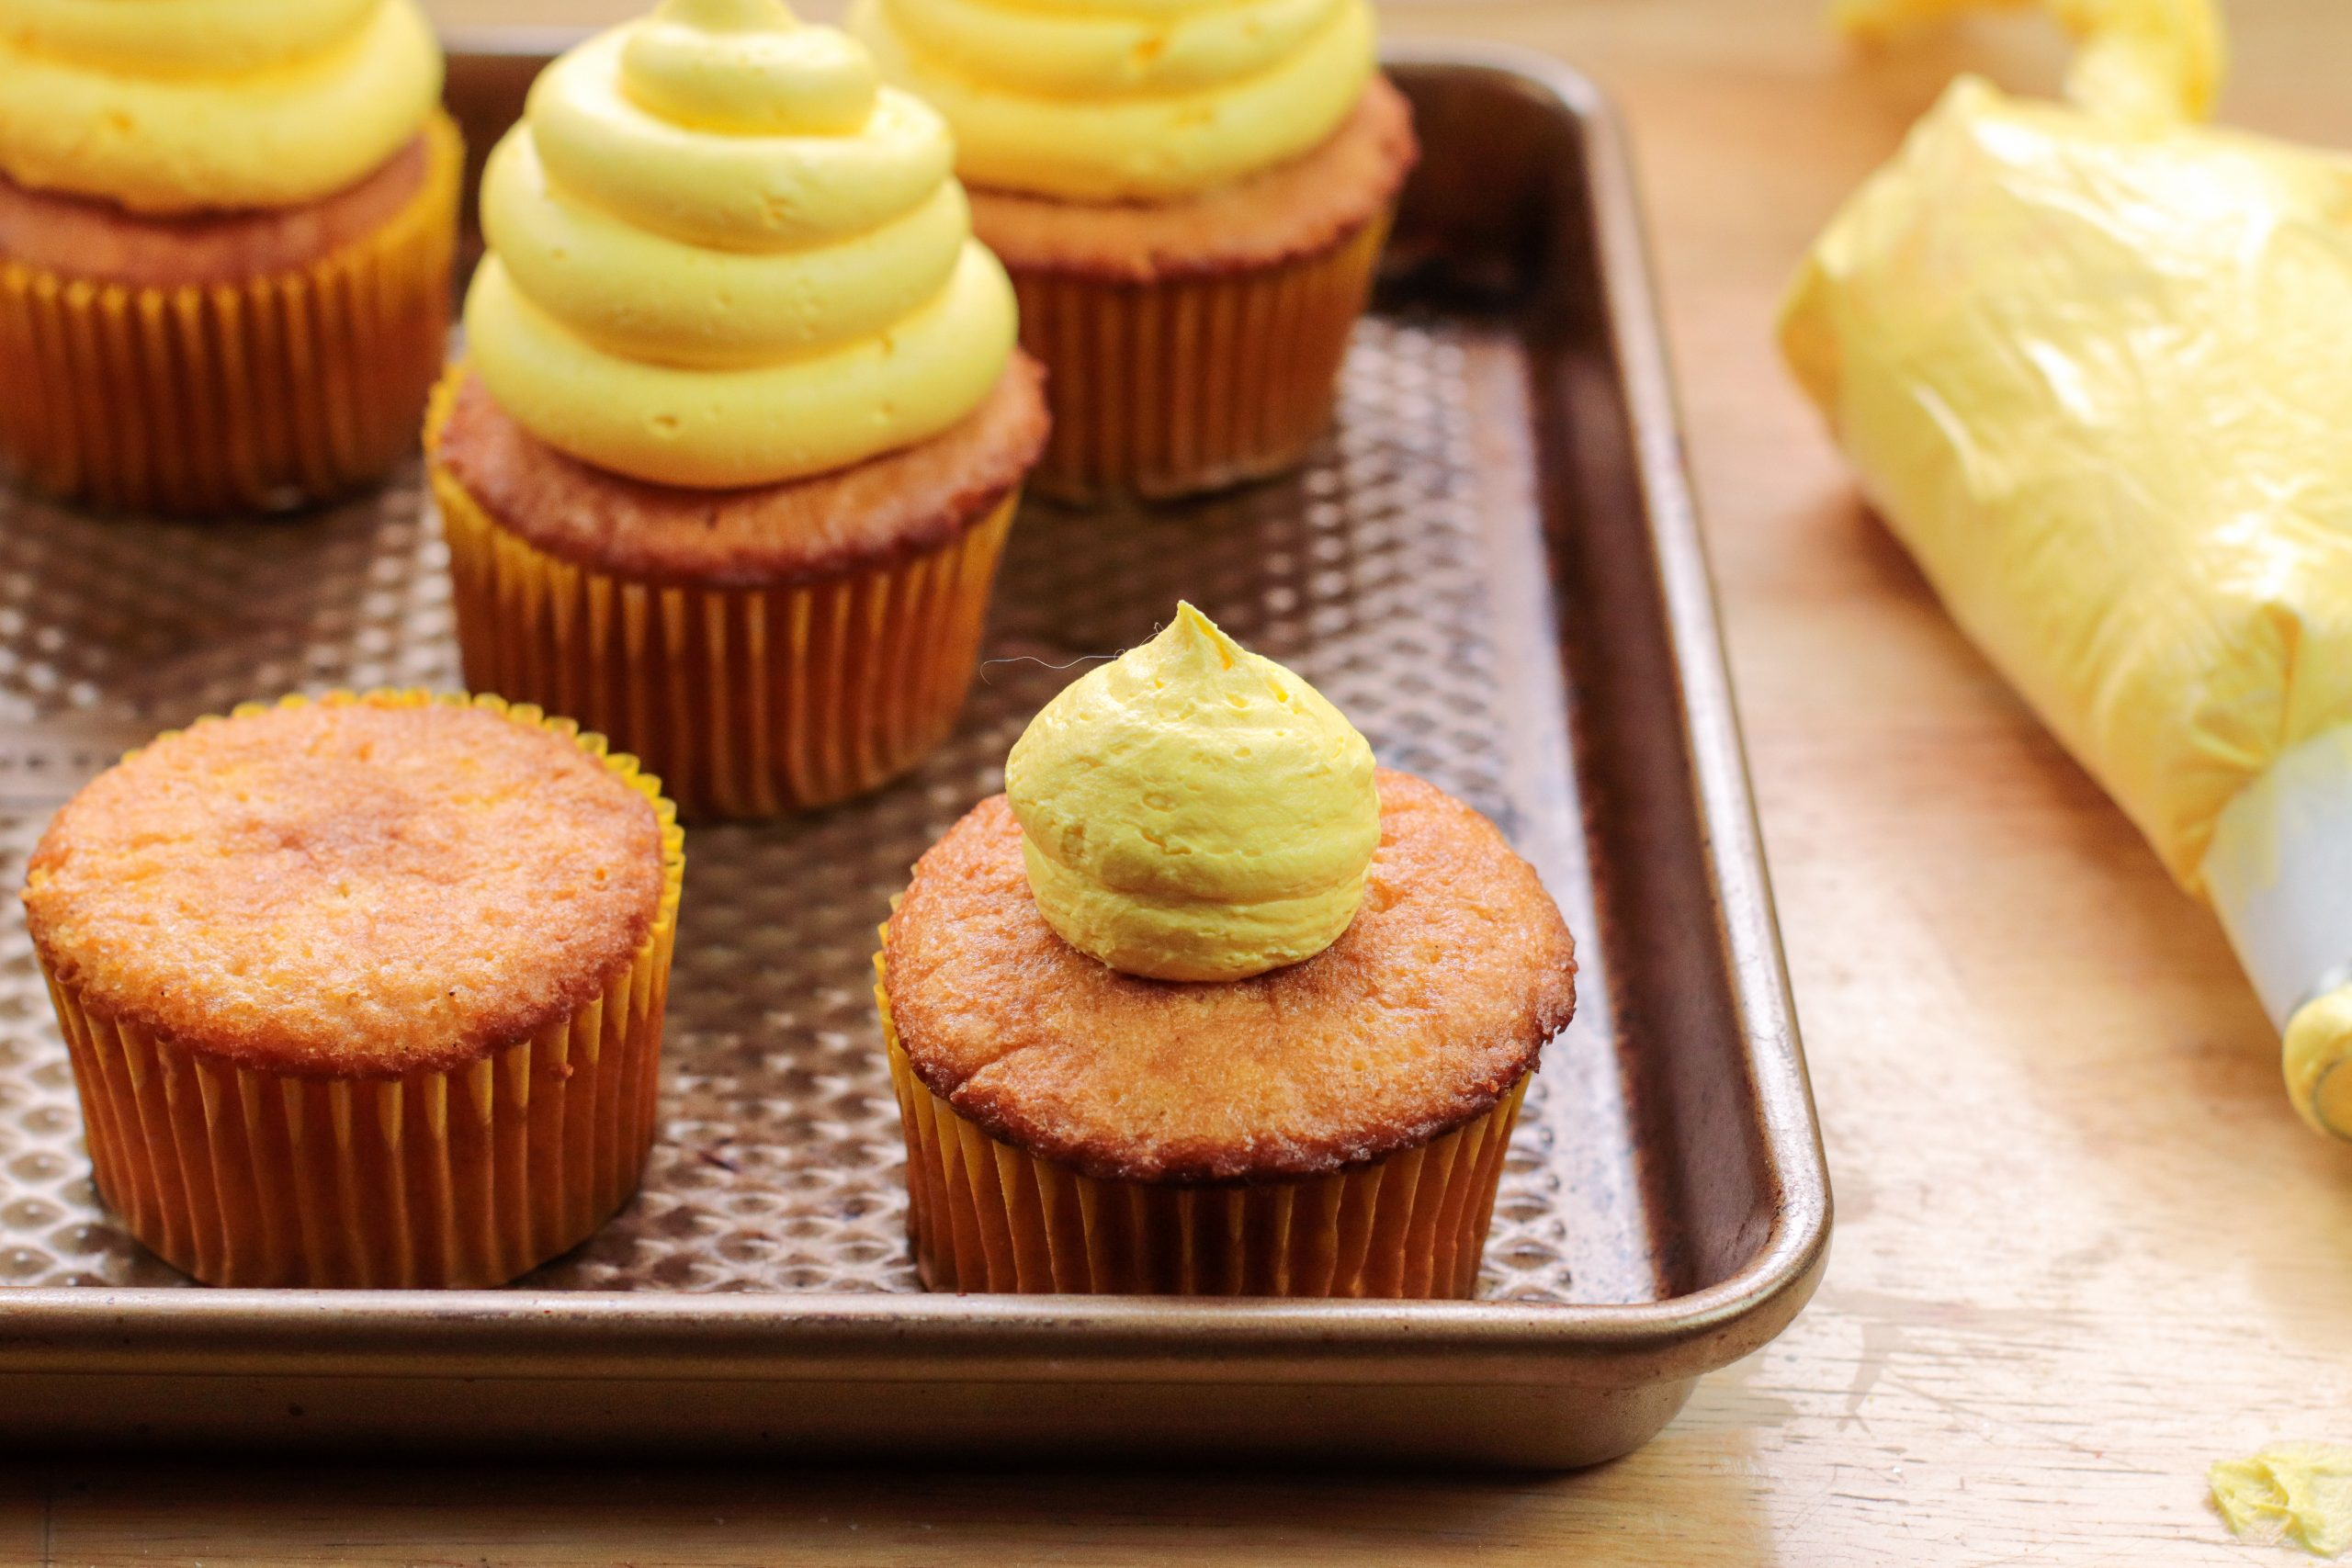 Piping the cupcakes with frosting.